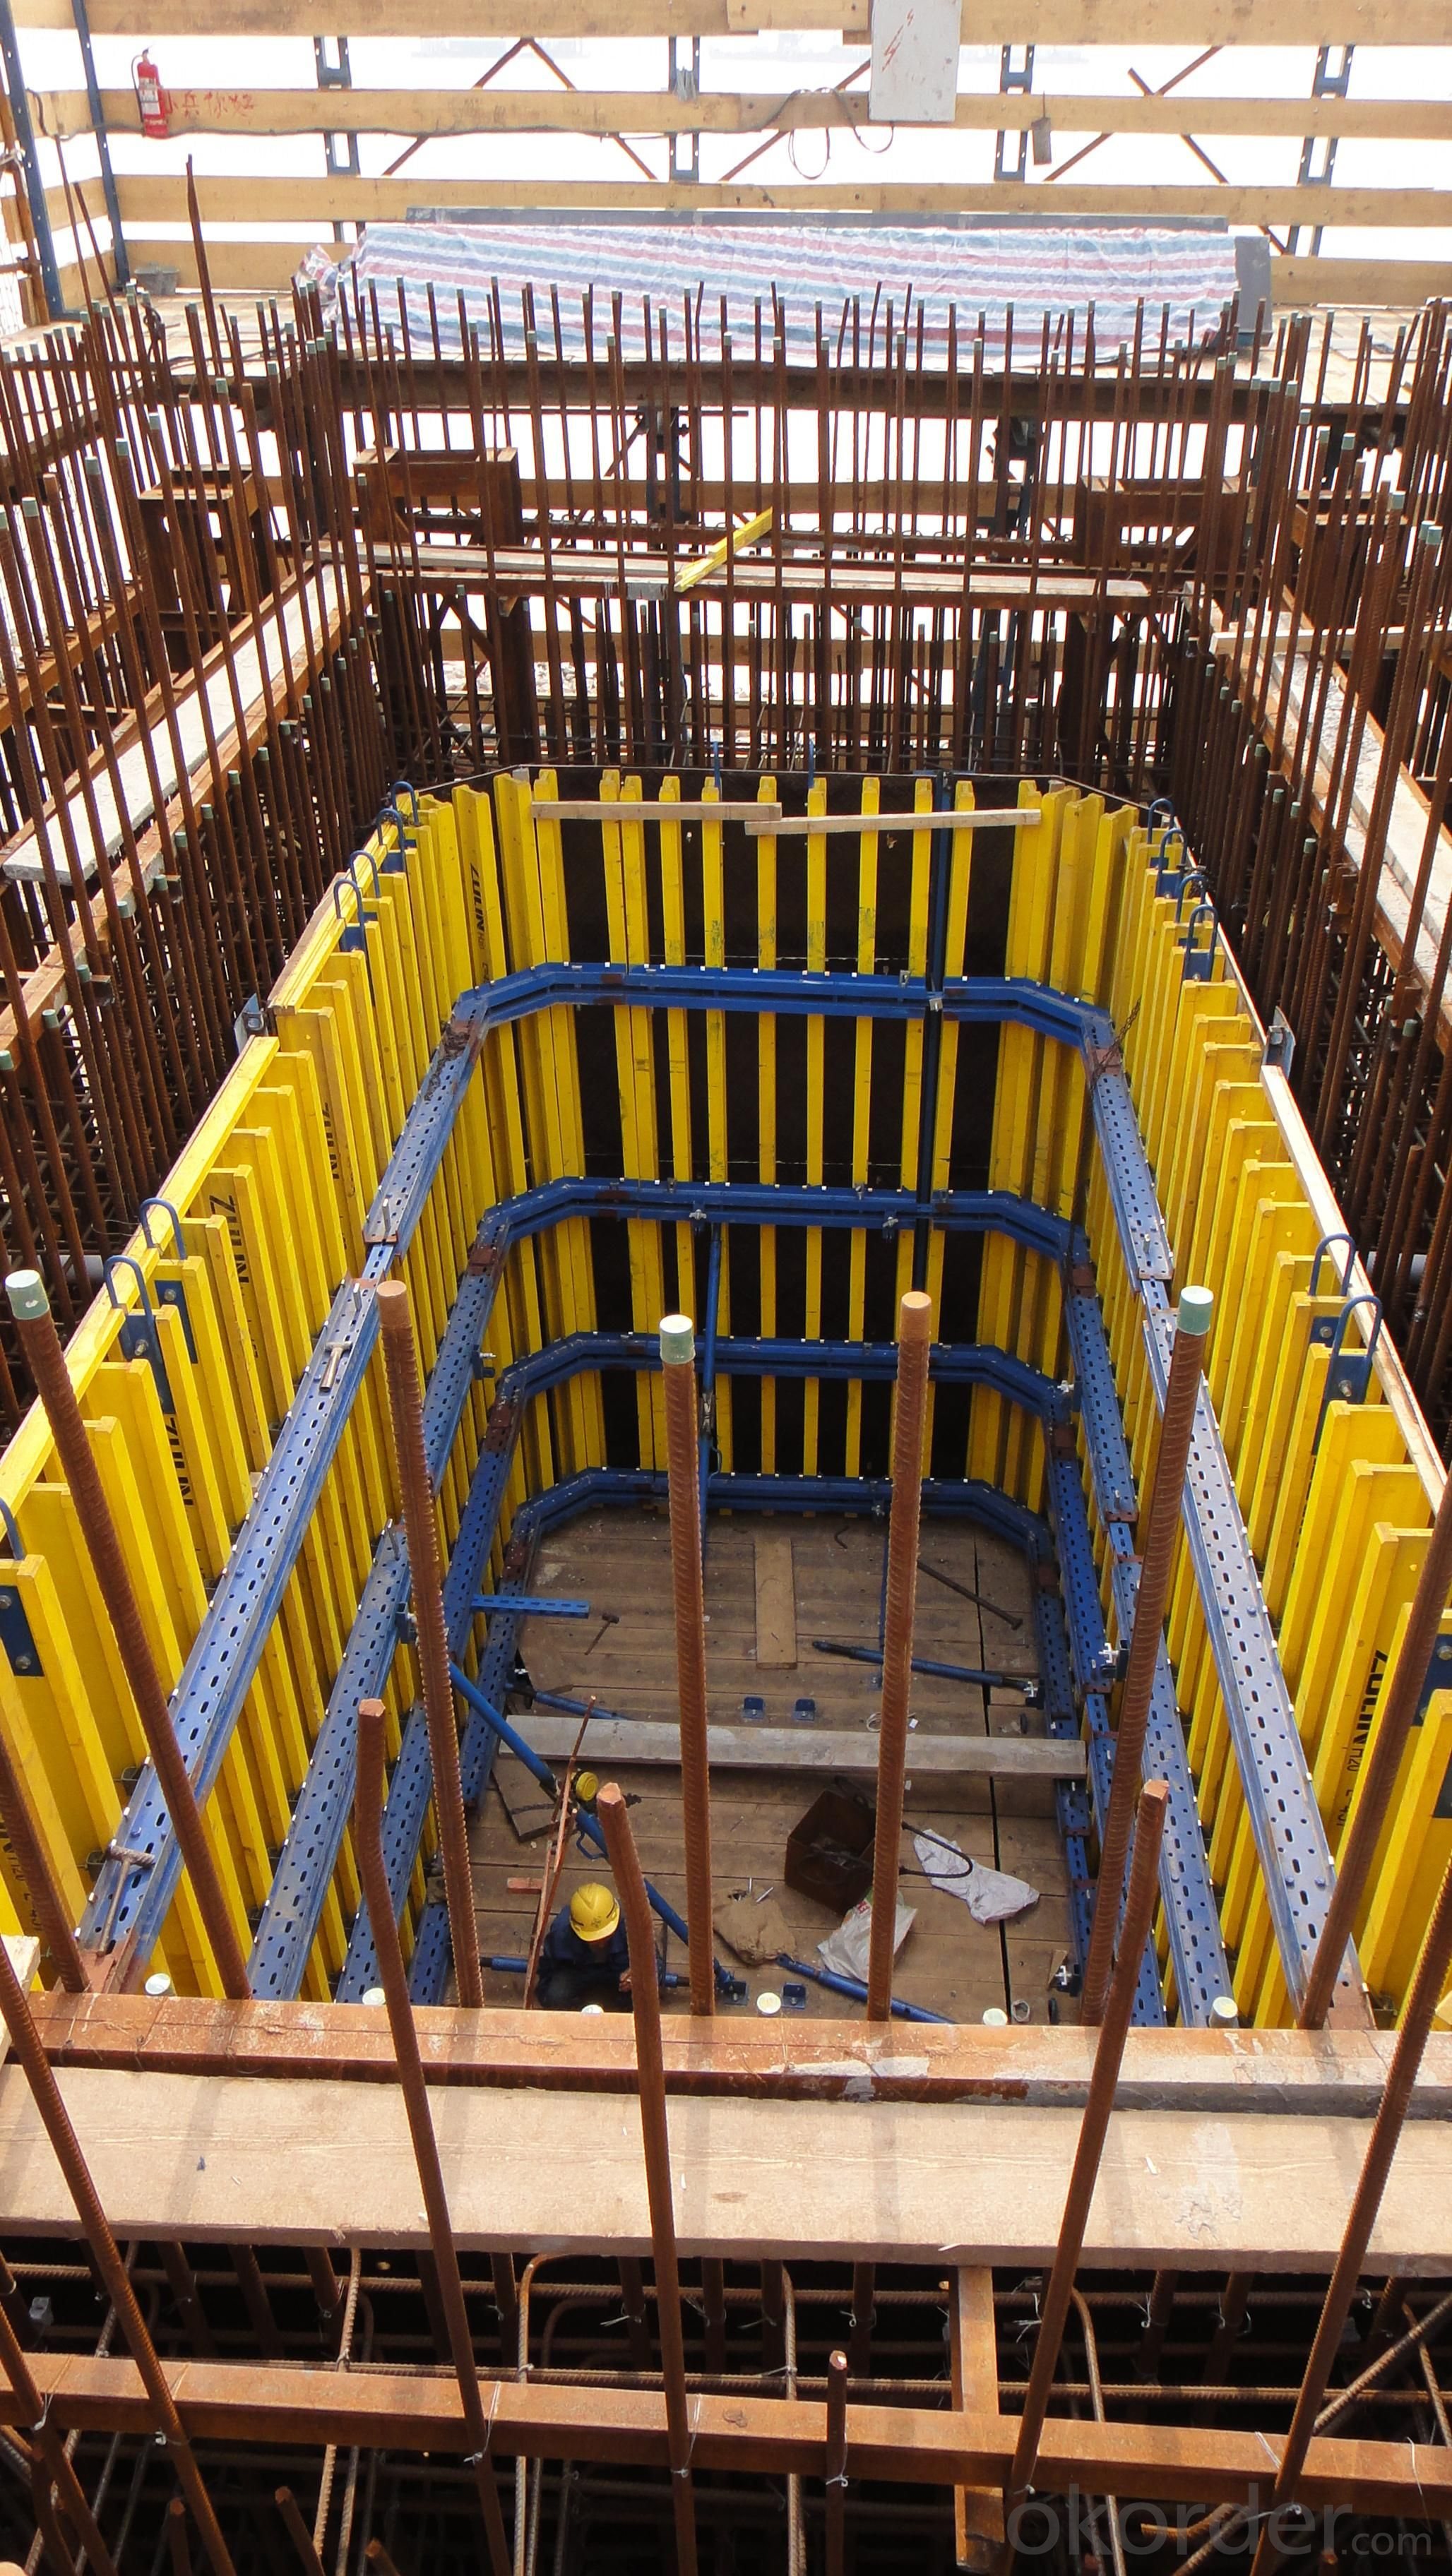 Timbe Beam Formwork  Used in The Concrete Pouring of Elevator Well